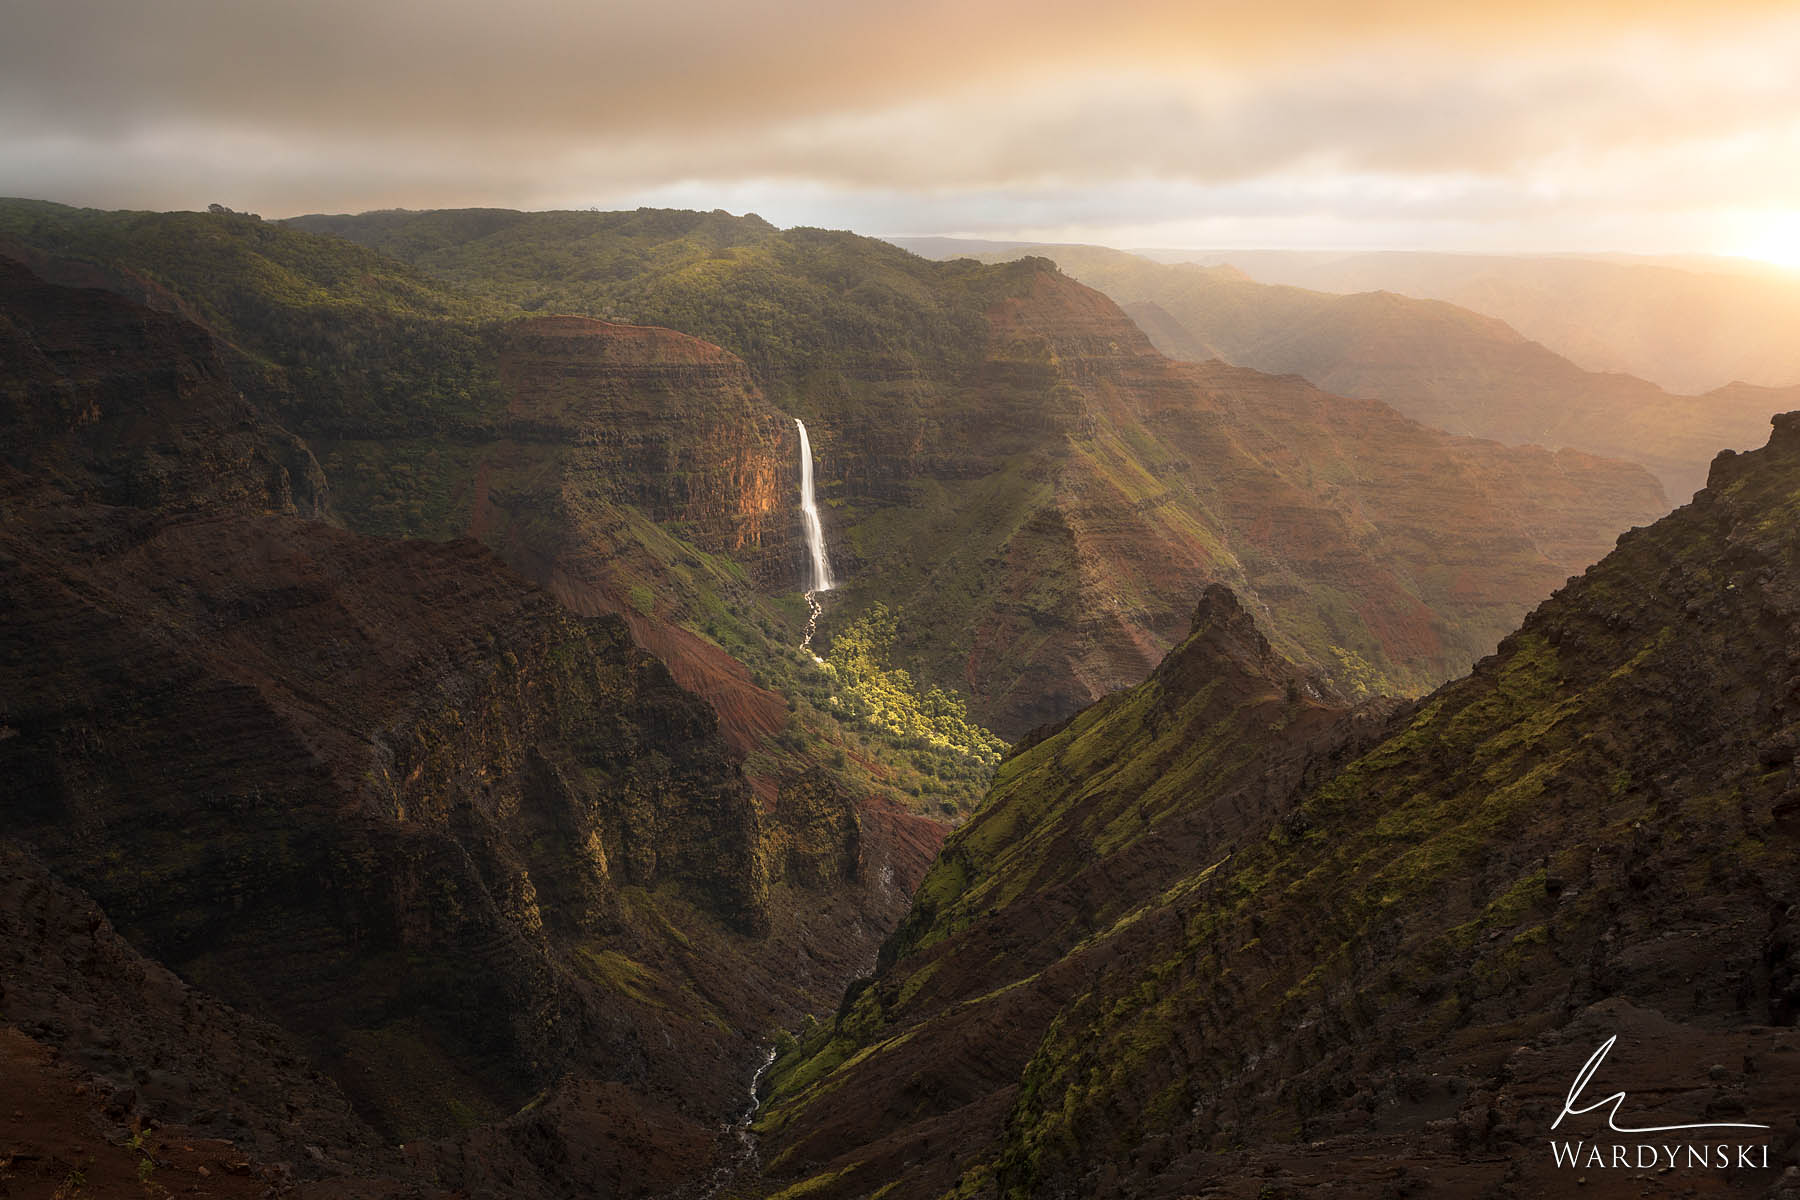 Fine Art Print | Limited Edition of 25  Golden morning light glows throughout Waimea Canyon during sunrise. Located on the island...